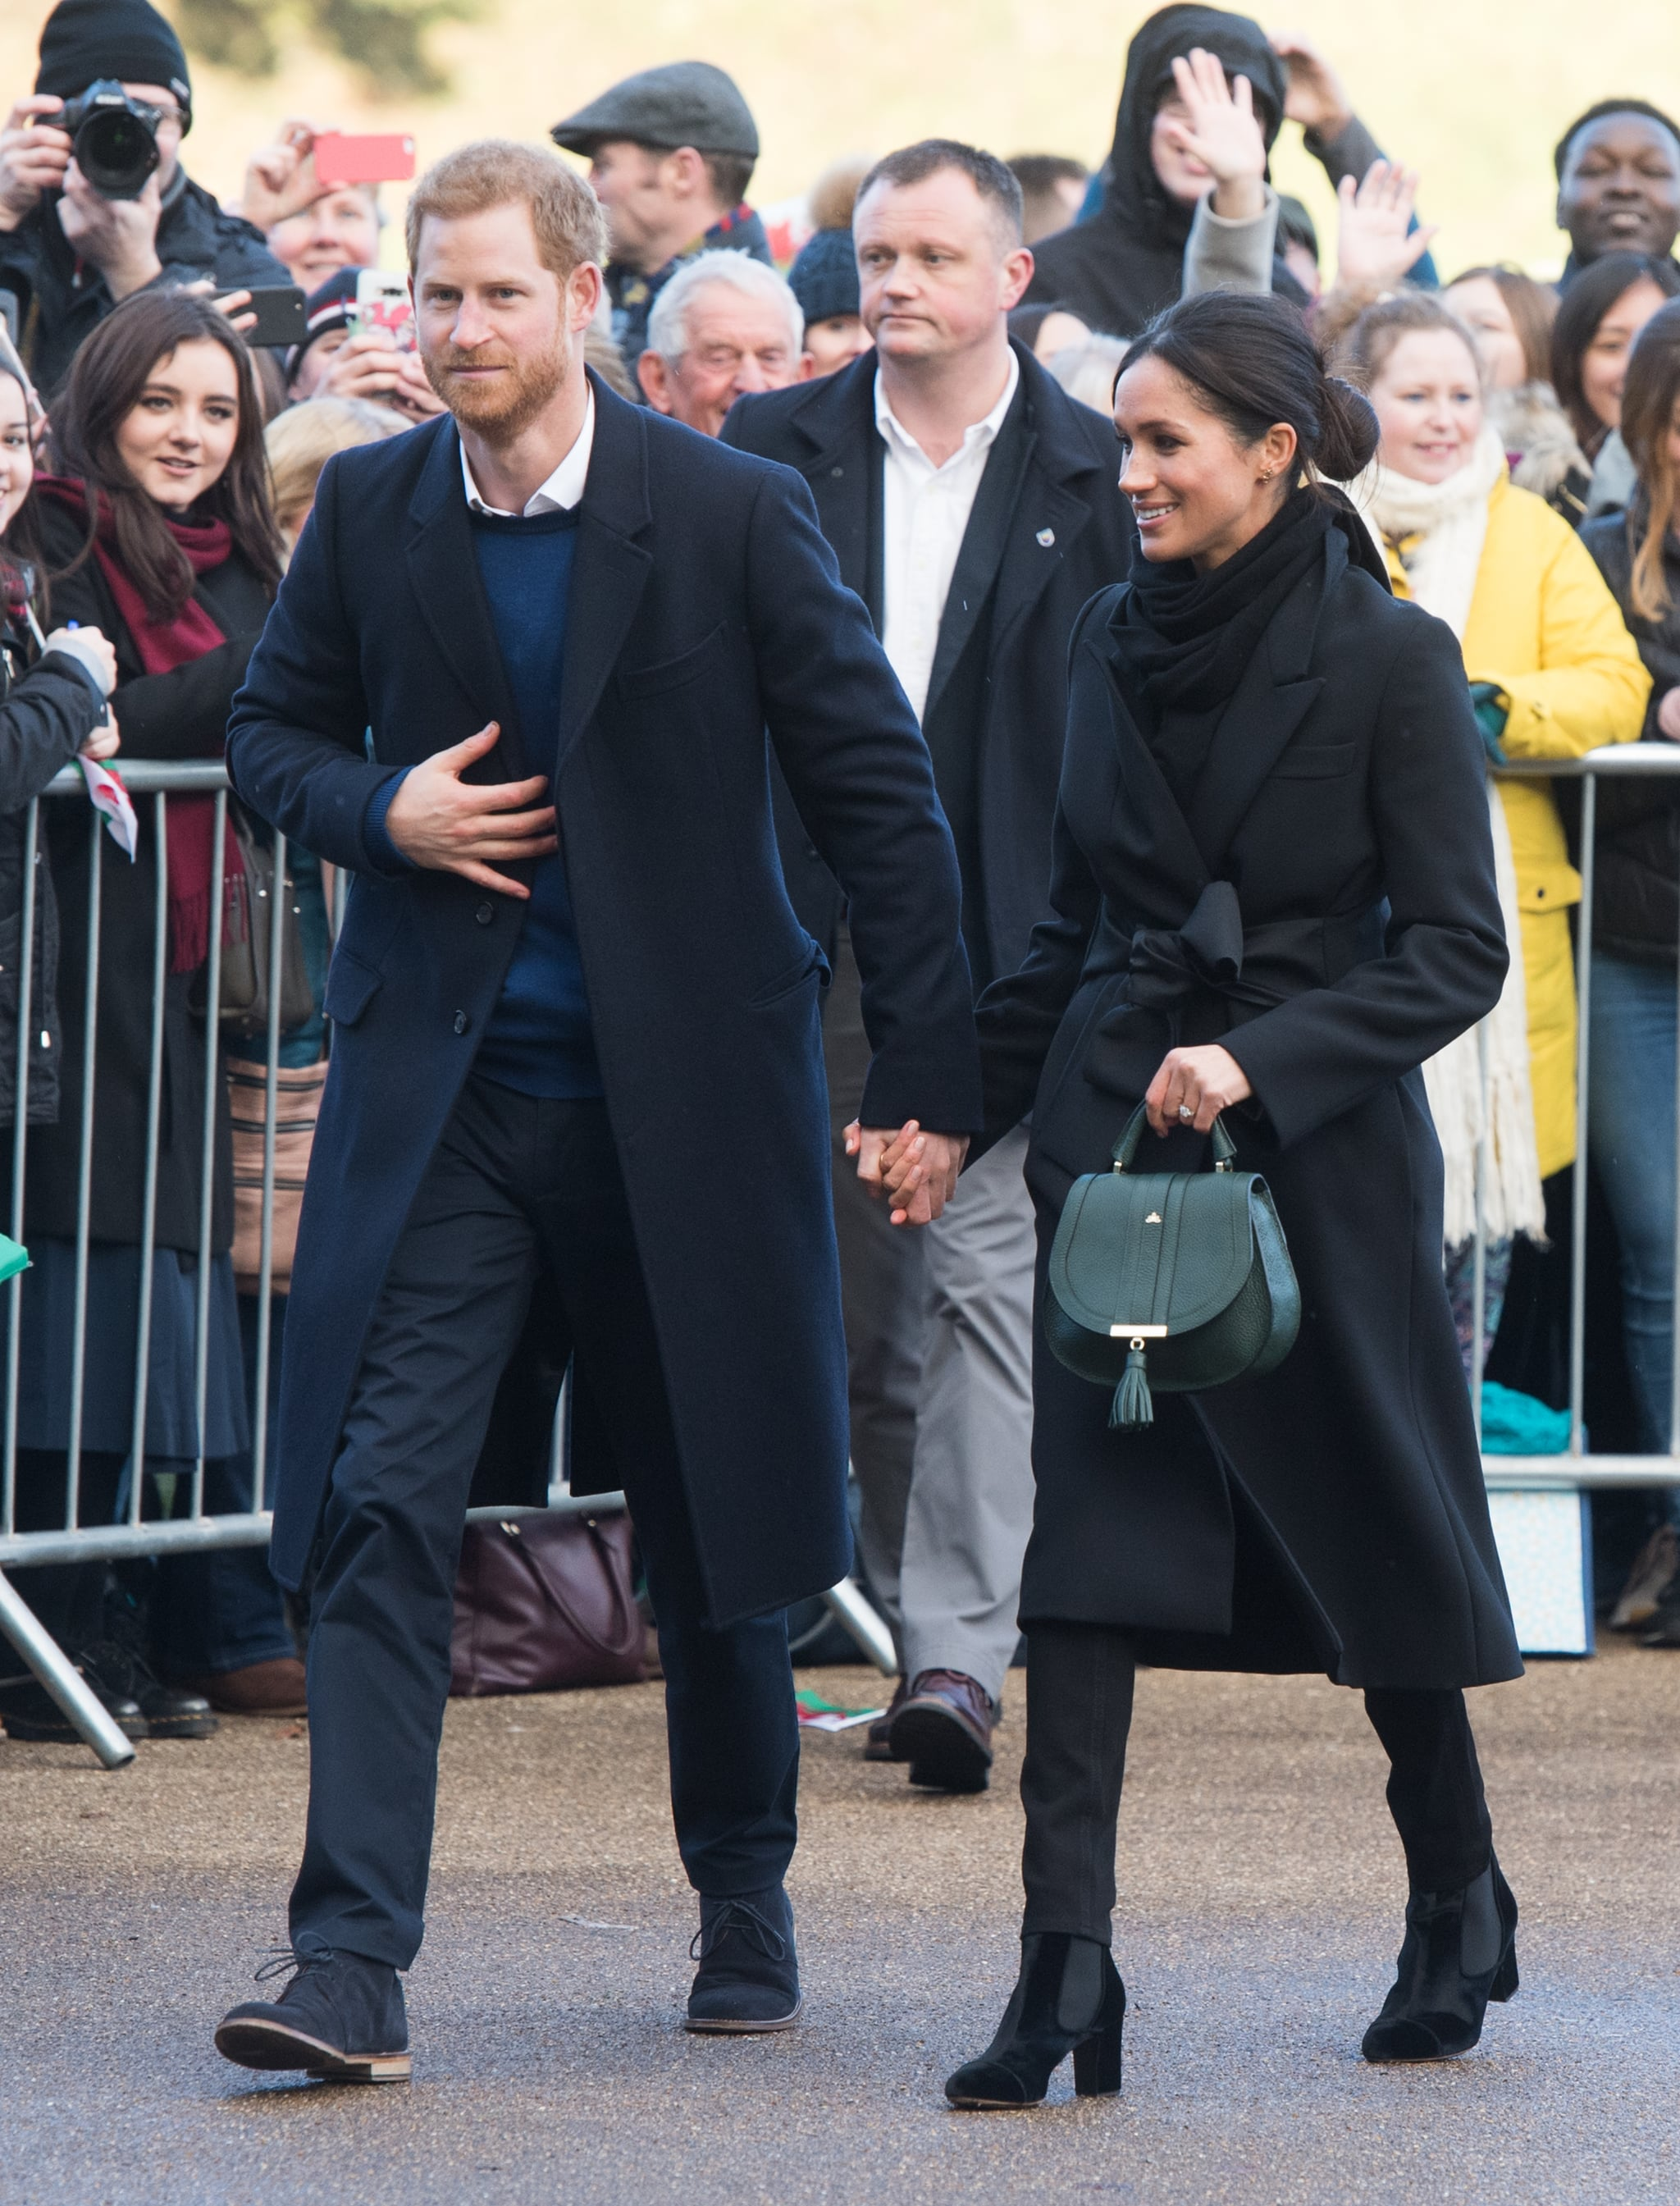 CARDIFF, WALES - JANUARY 18:  Prince Harry and fiance Meghan Markle visit Cardiff Castle on January 18, 2018 in Cardiff, Wales.  (Photo by Samir Hussein/Samir Hussein/WireImage)